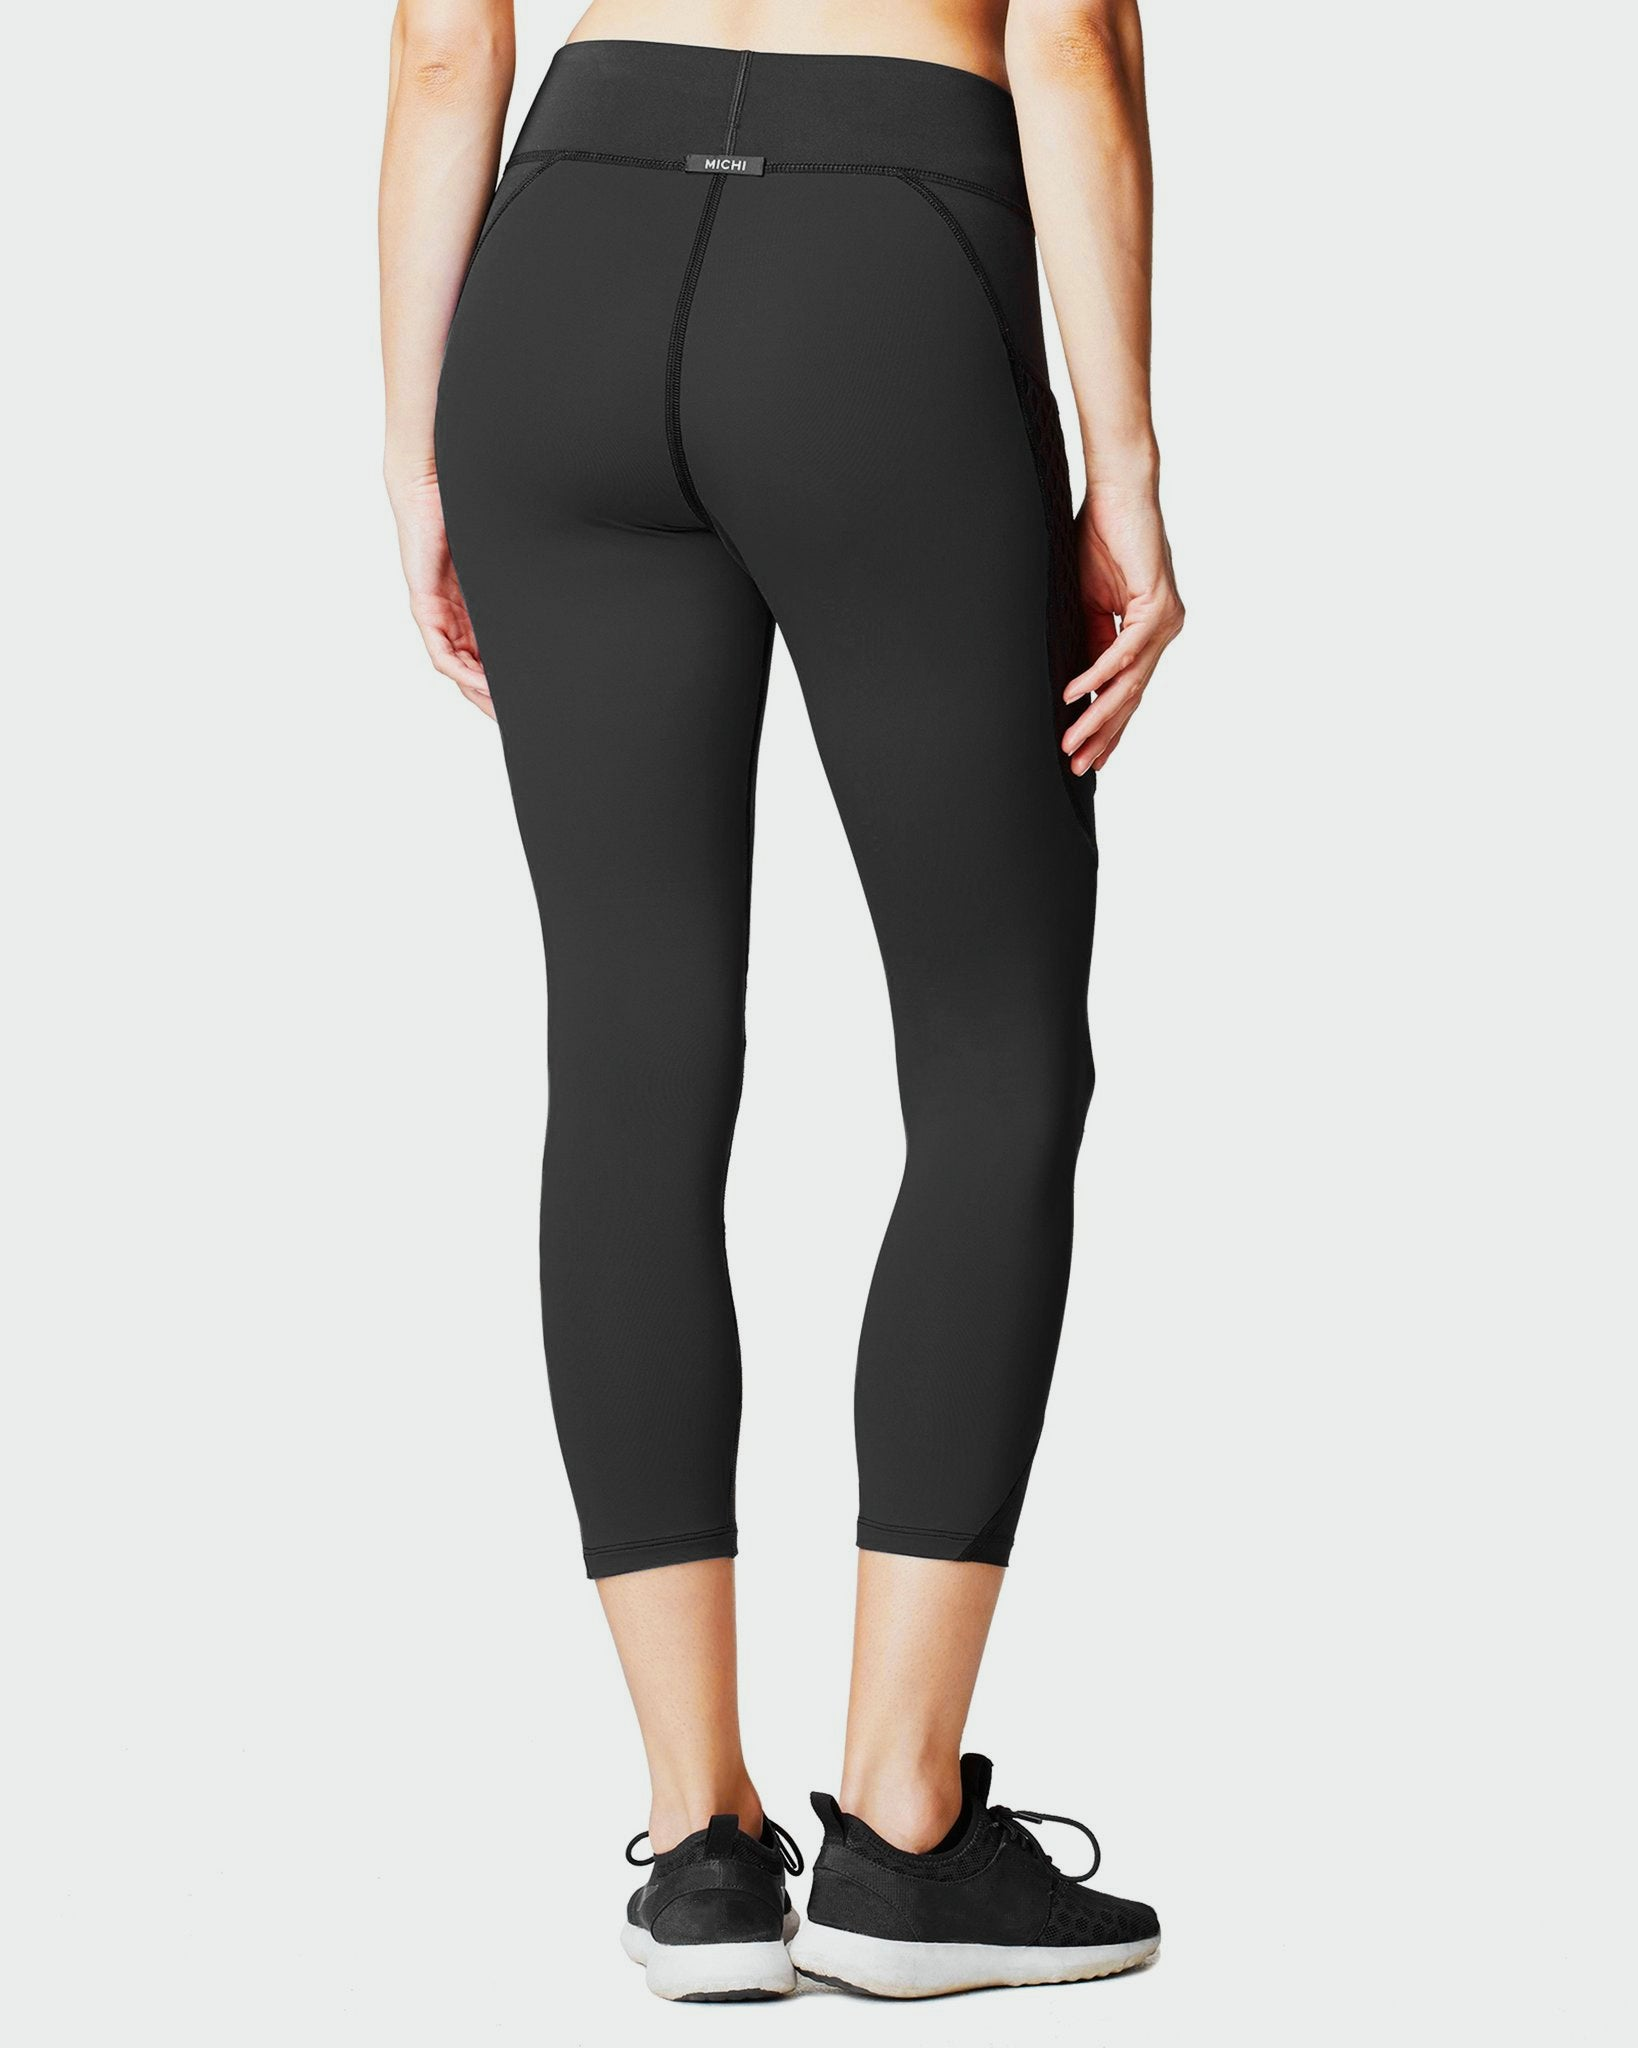 suprastelle-crop-legging-w-pocket-black